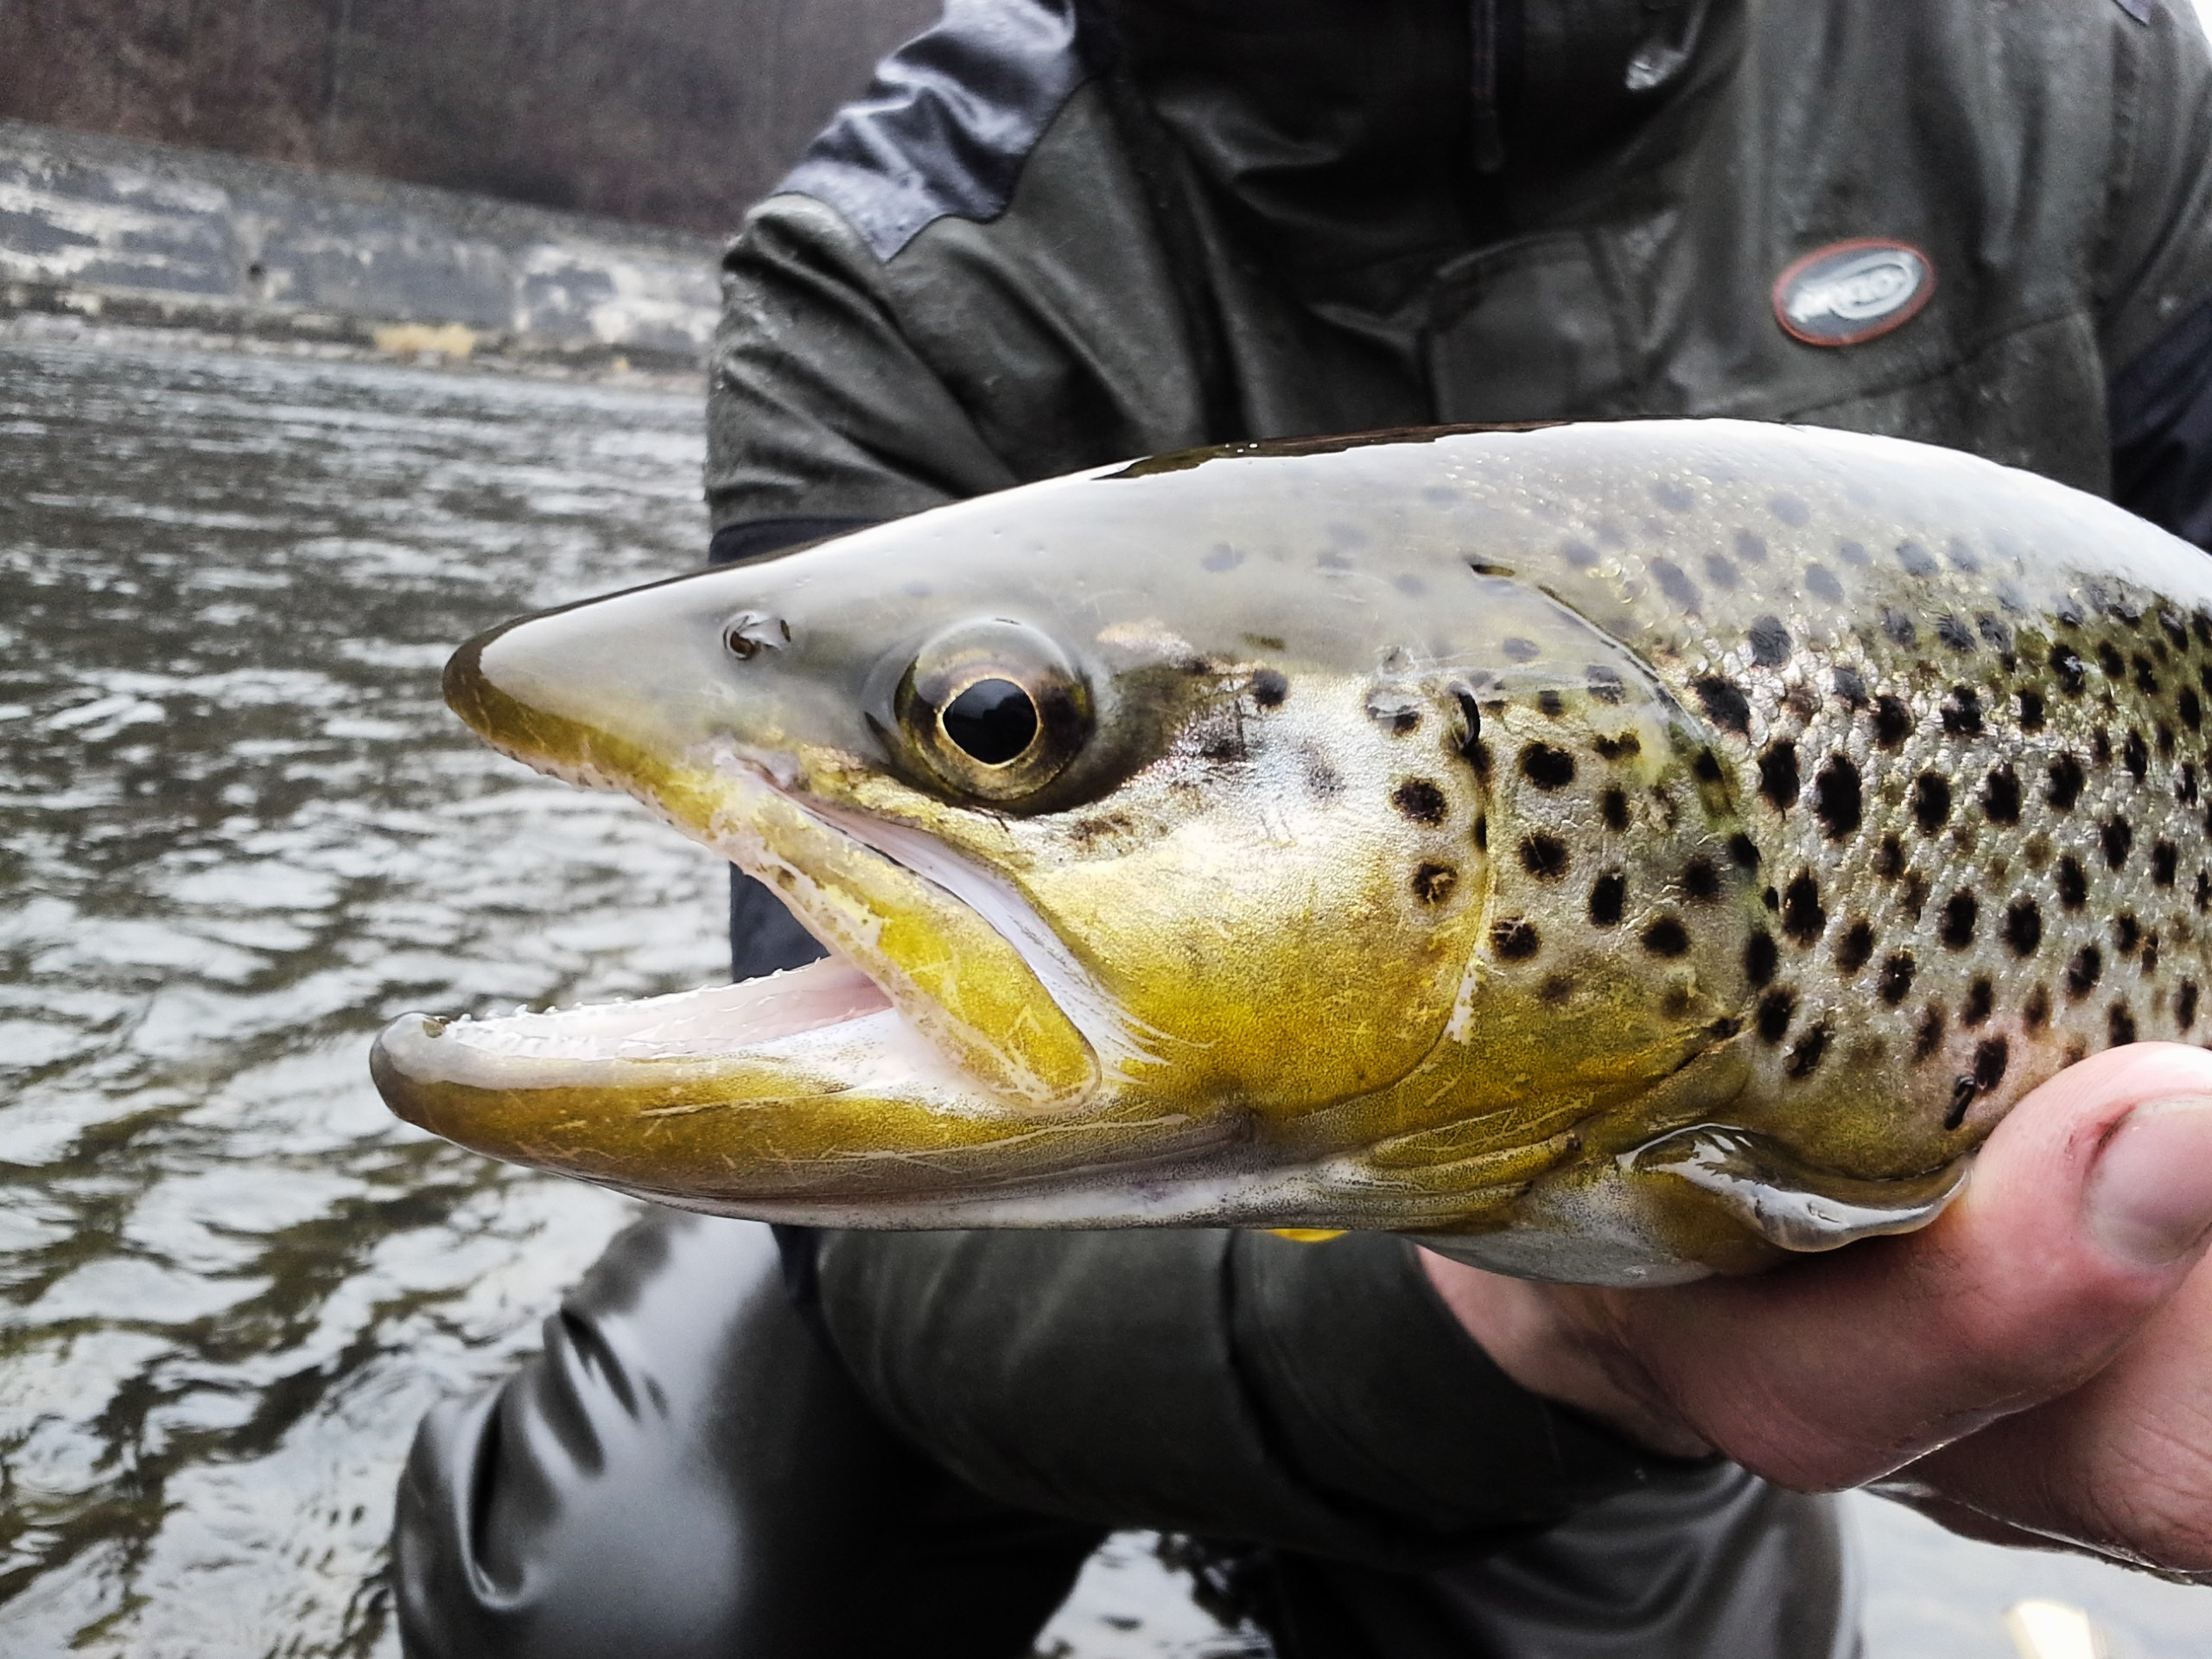 Second wall - Dunajec River,  Airflo, Brown Trout